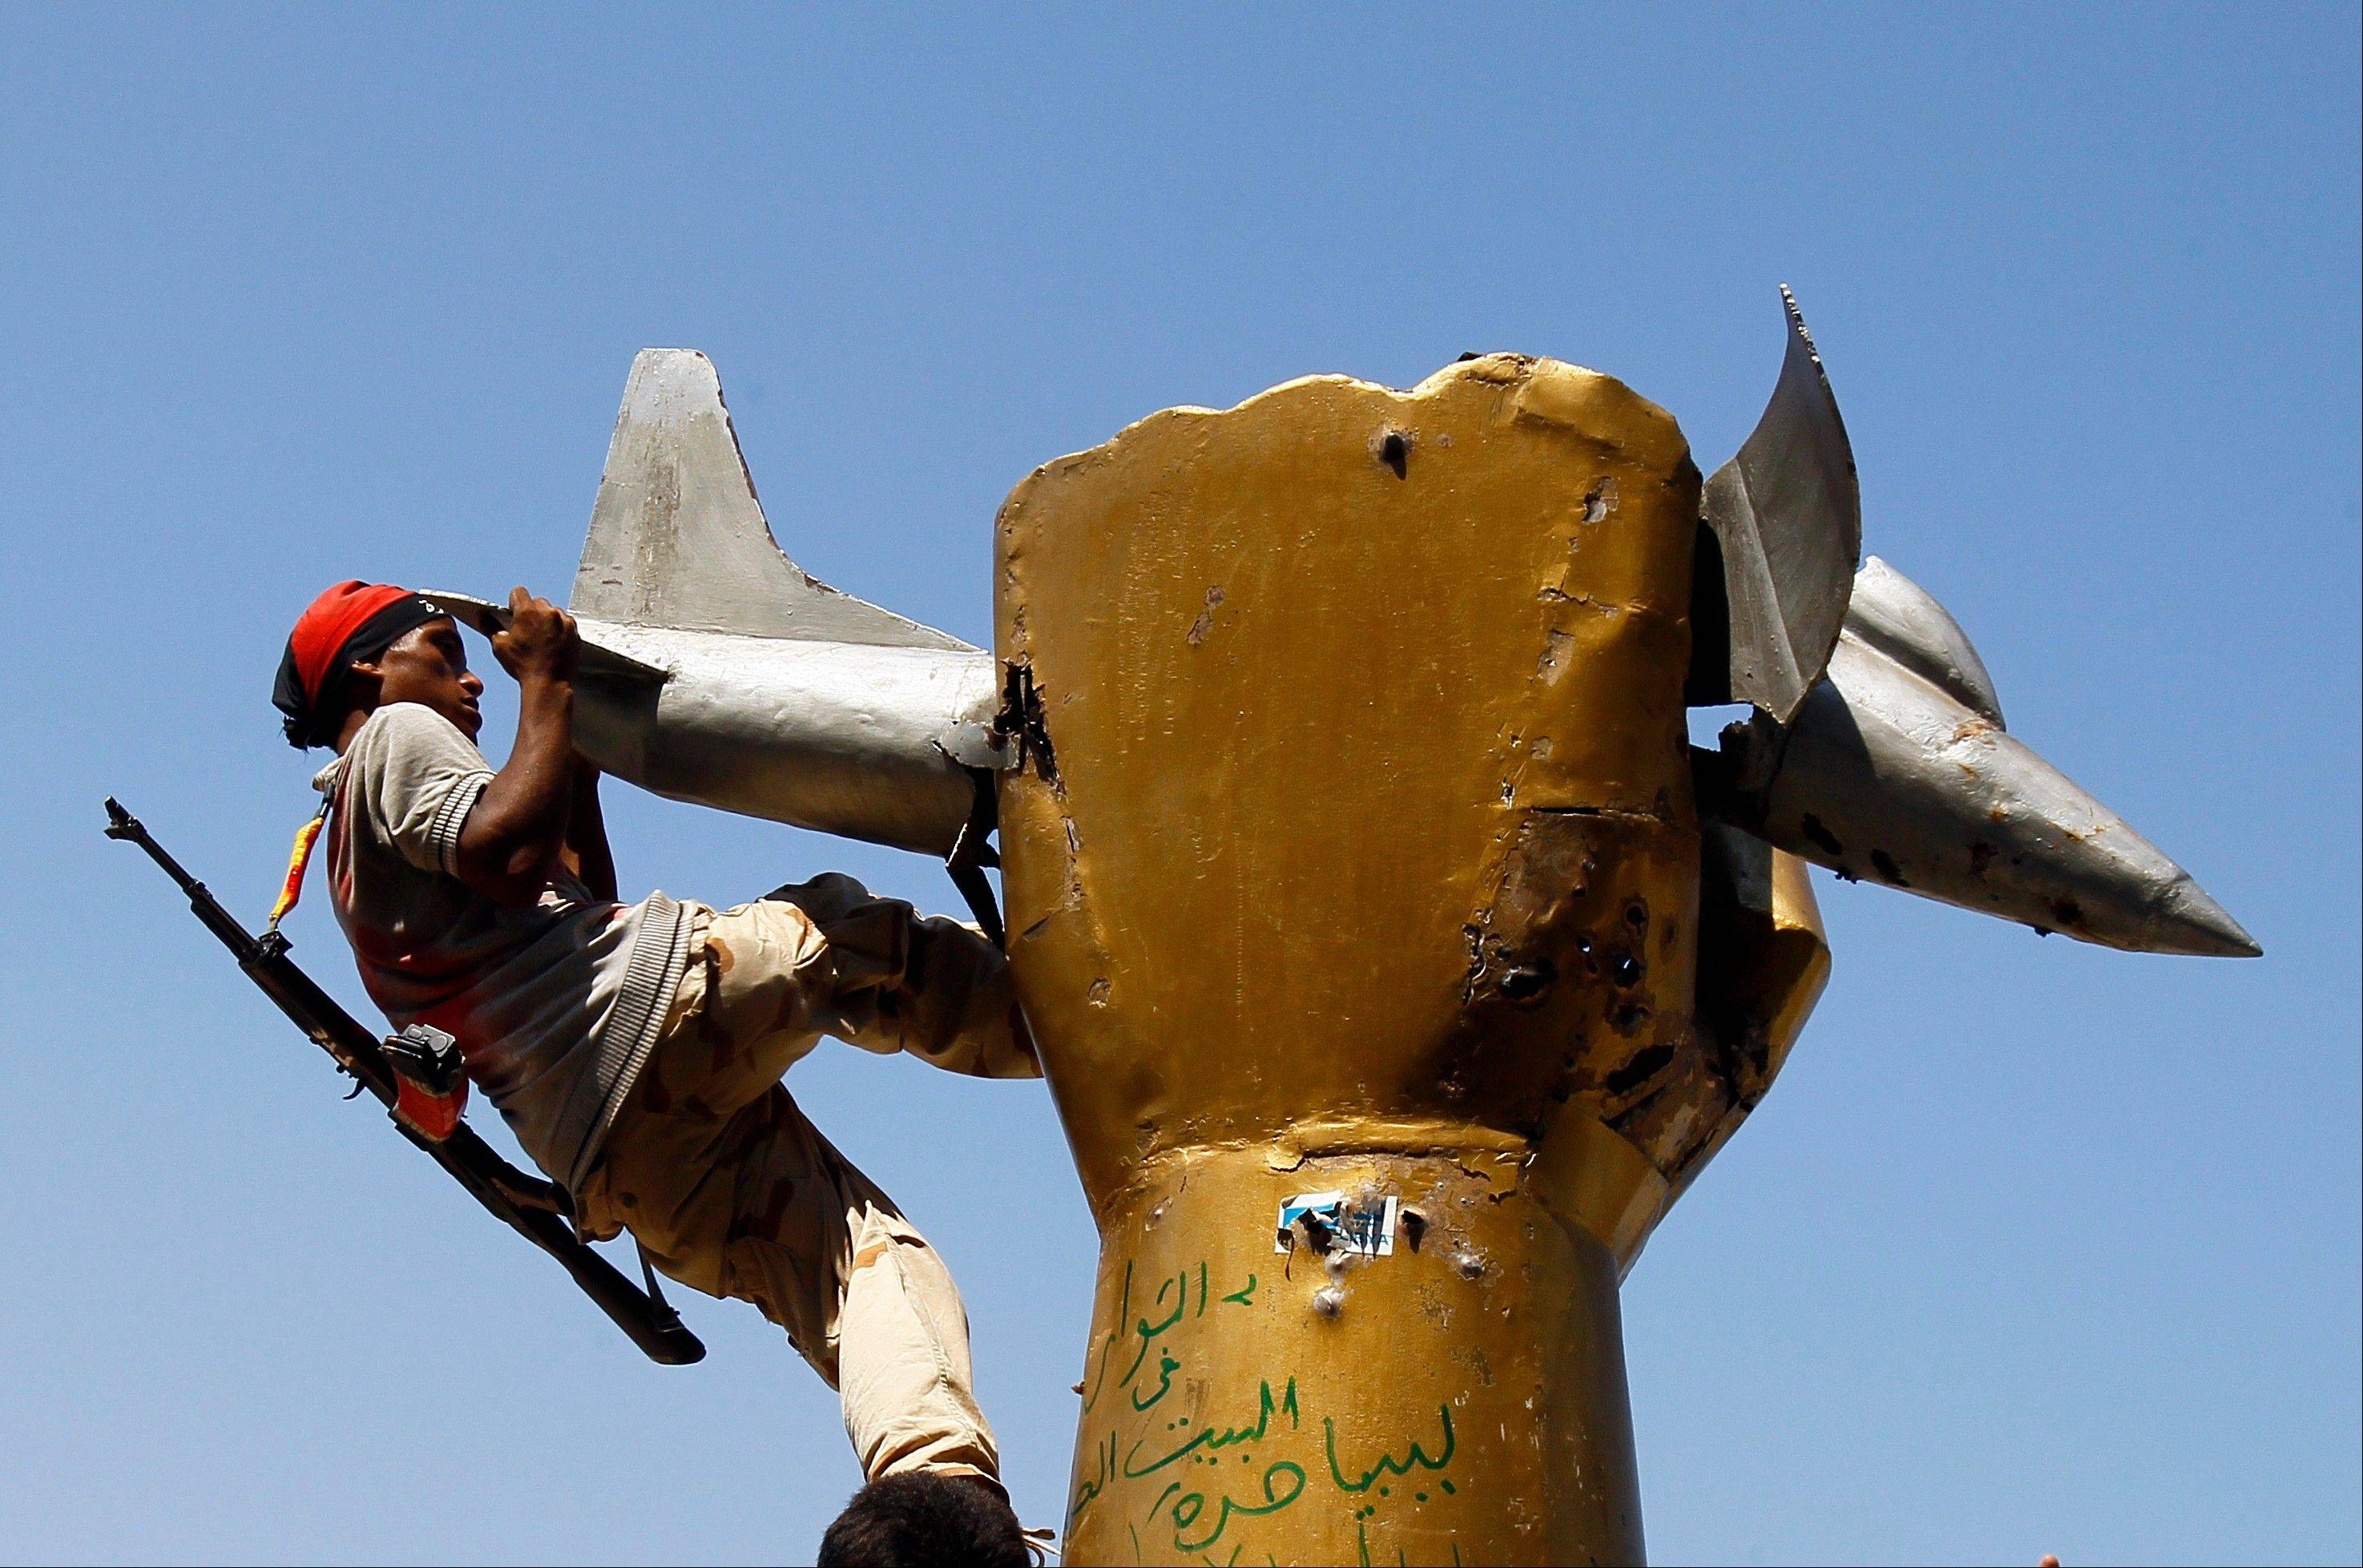 A rebel fighter climbs on top of a statue inside Moammar Gadhafi's compound Bab al-Aziziya in Tripoli early Wednesday.